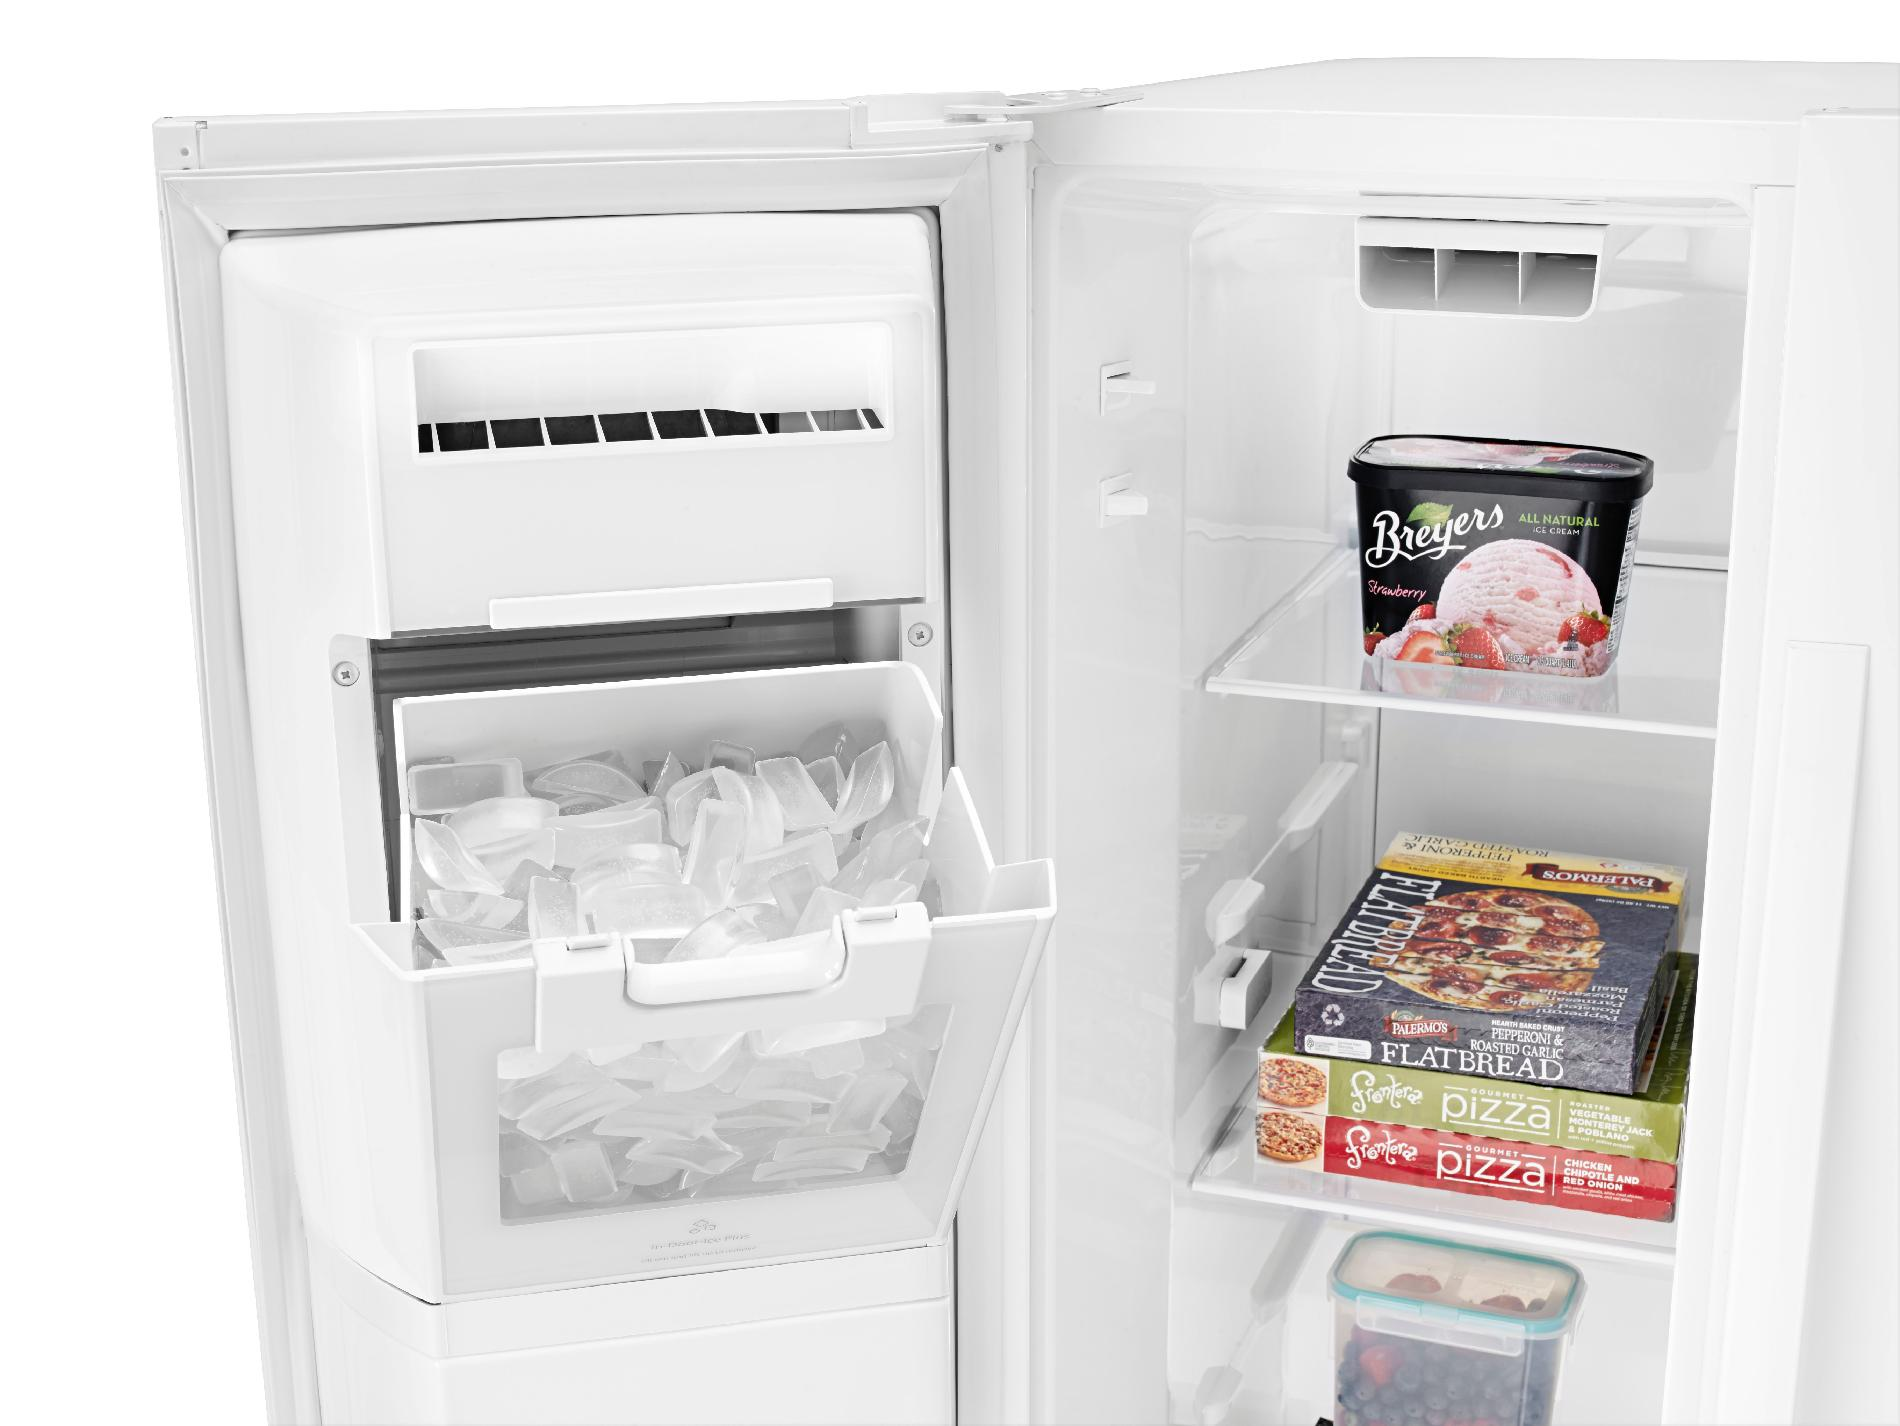 Whirlpool WRS576FIDW 26 cu. ft. Side-by-Side Refrigerator w/ Exterior Controls - White